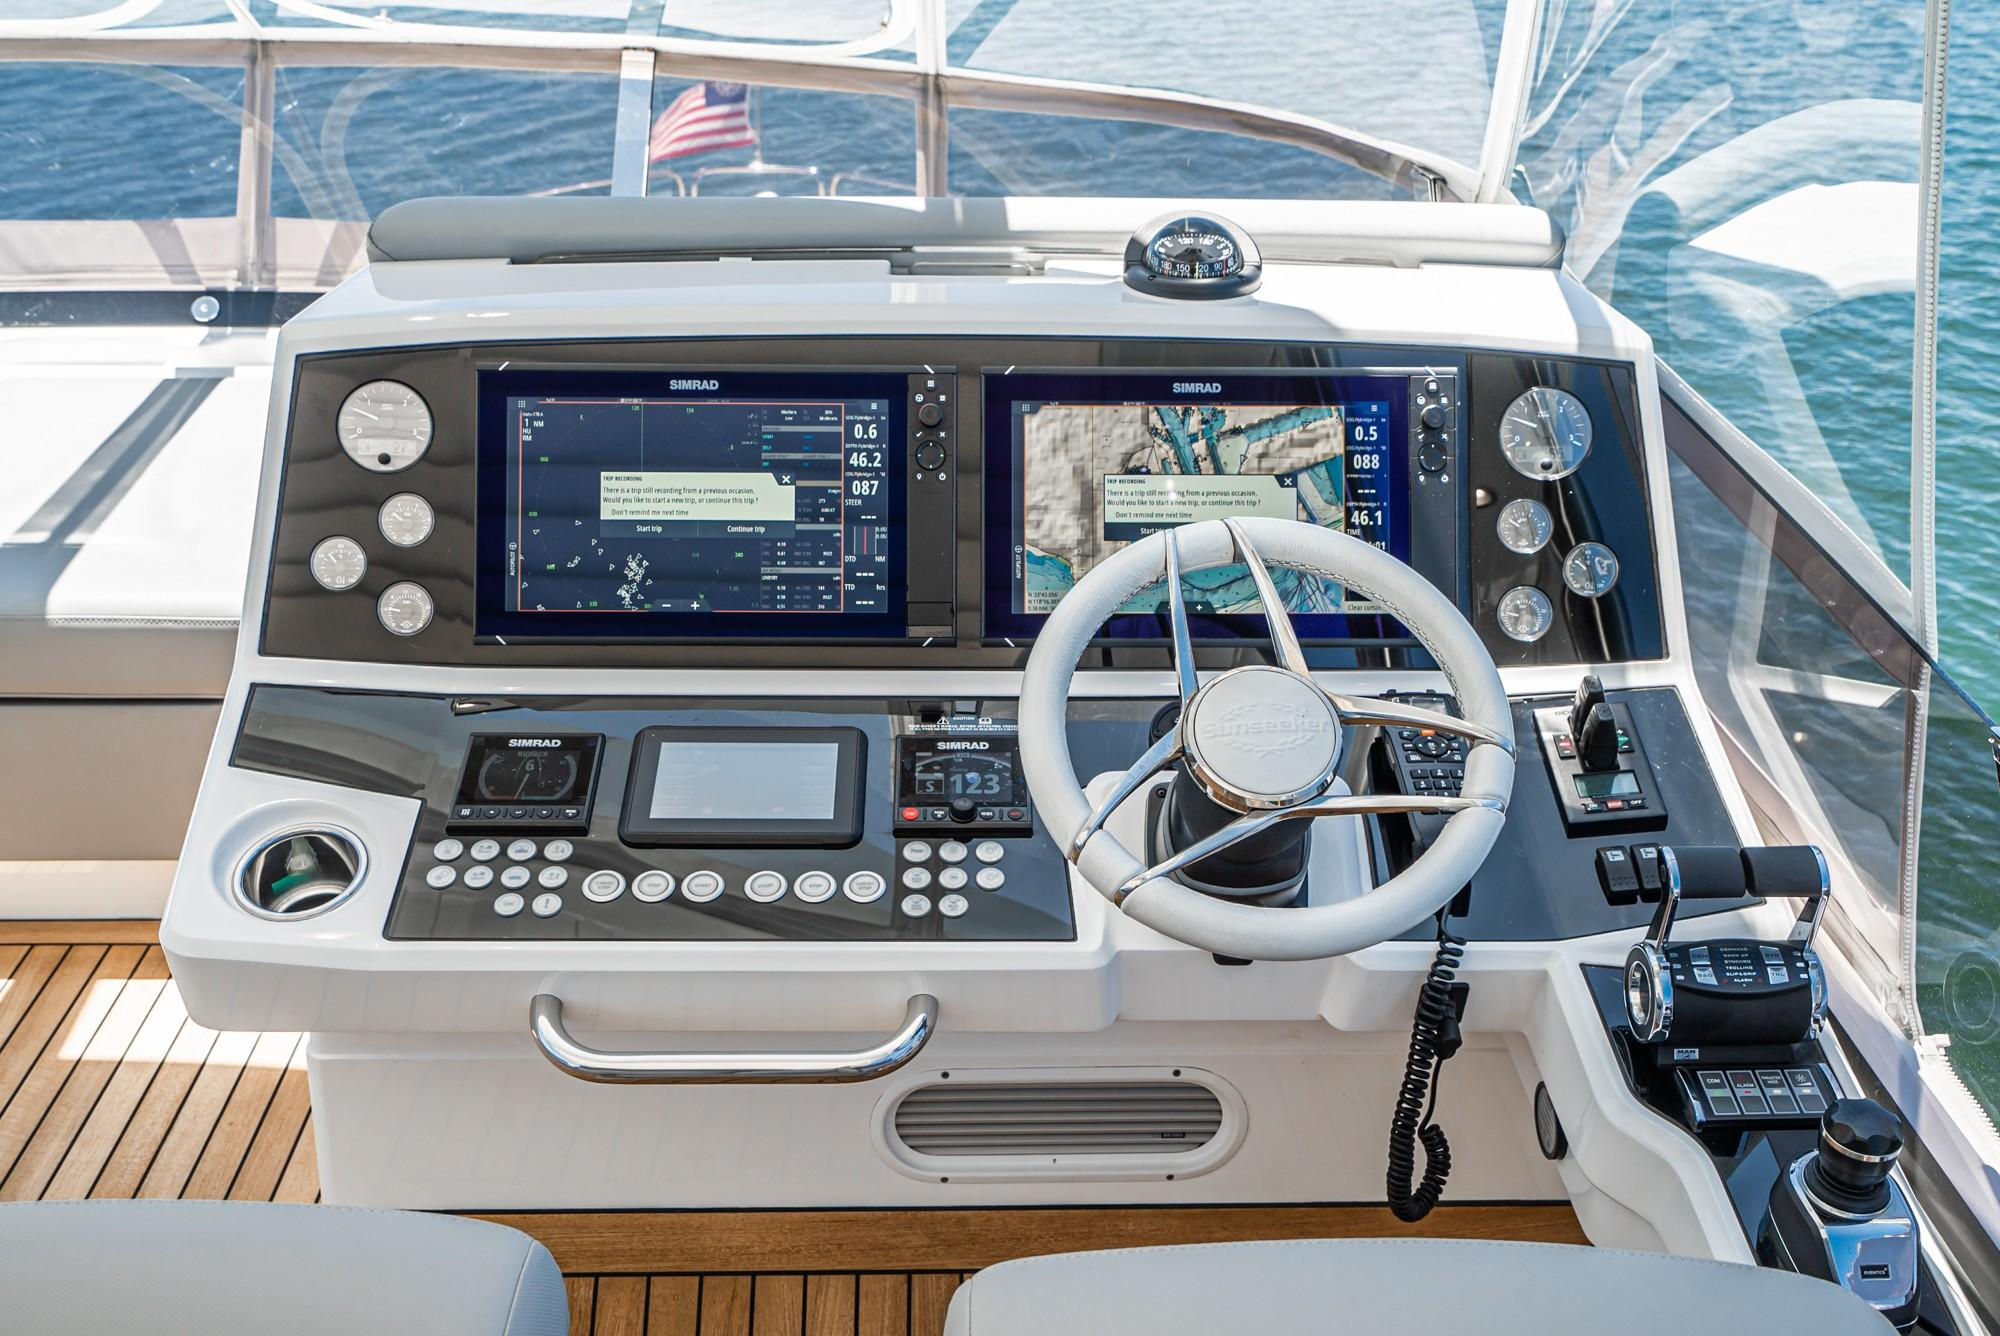 2018 Sunseeker 76 Yacht #TB7082JR inventory image at Sun Country Yachts in Newport Beach